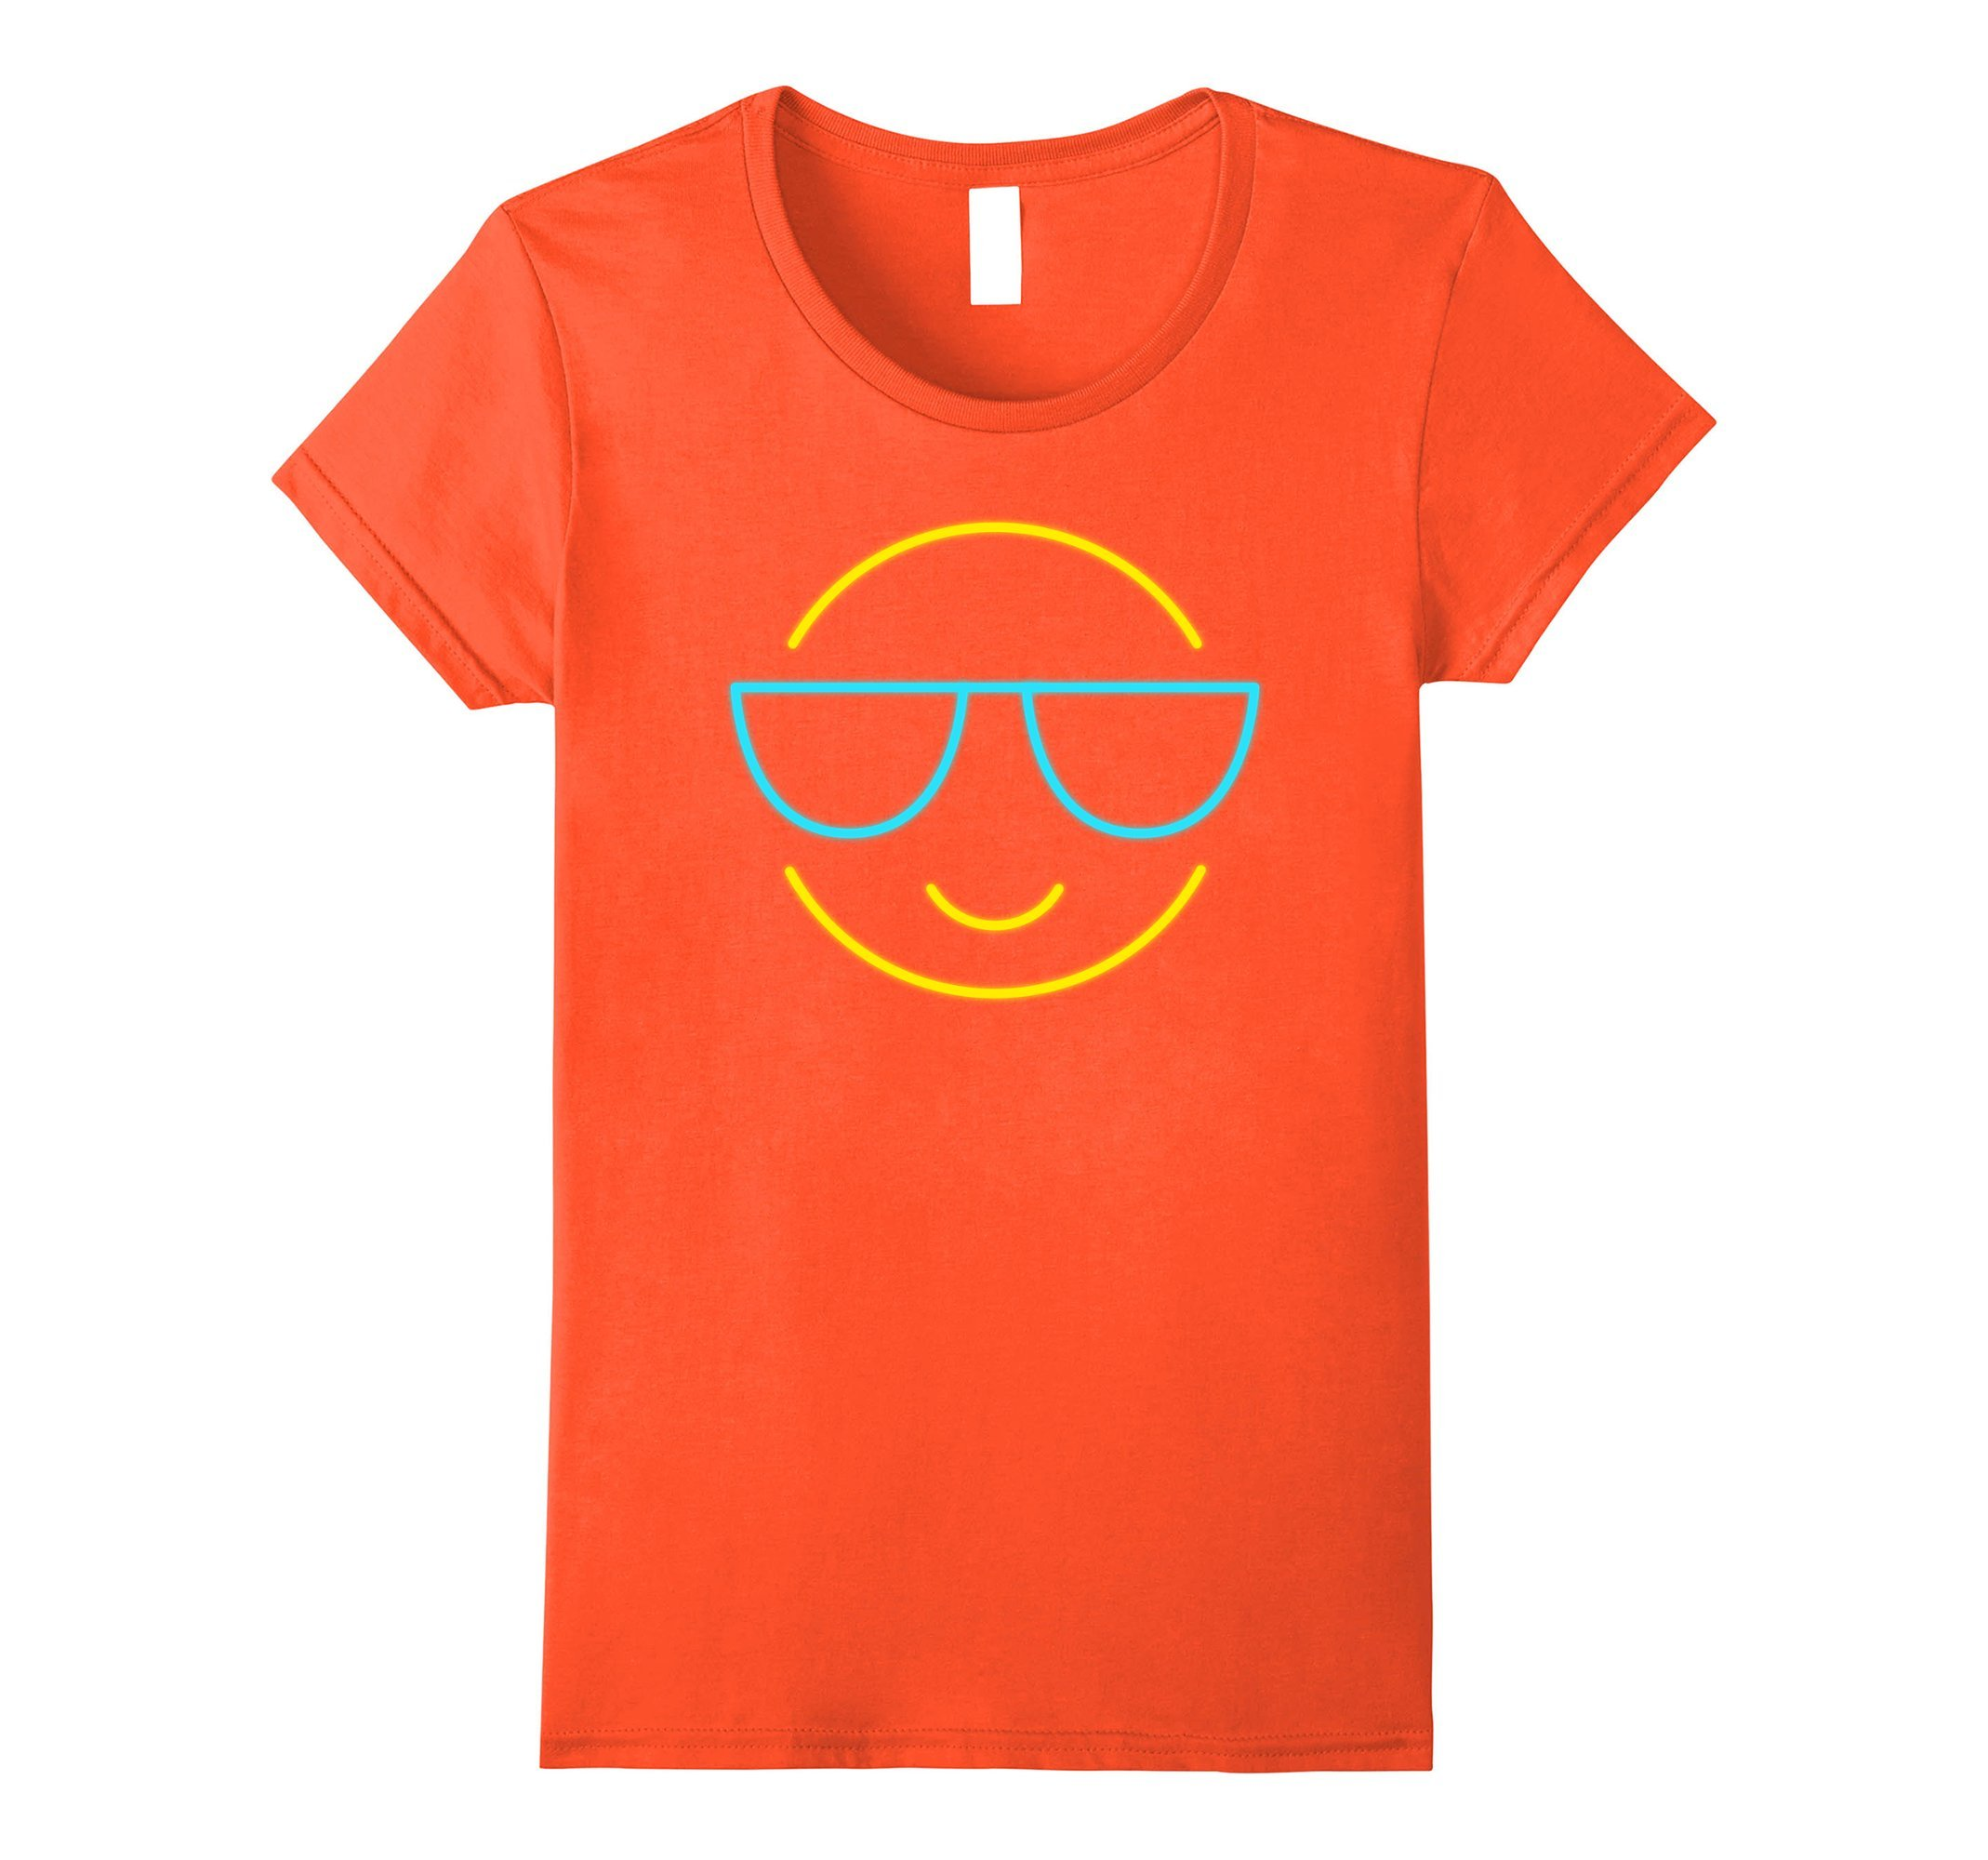 Womens 80s Retro Neon Sign Aloha Emoji T-Shirt. 80's Gift Small Orange by Funny Vintage Retro Pool Party 80s Shirt